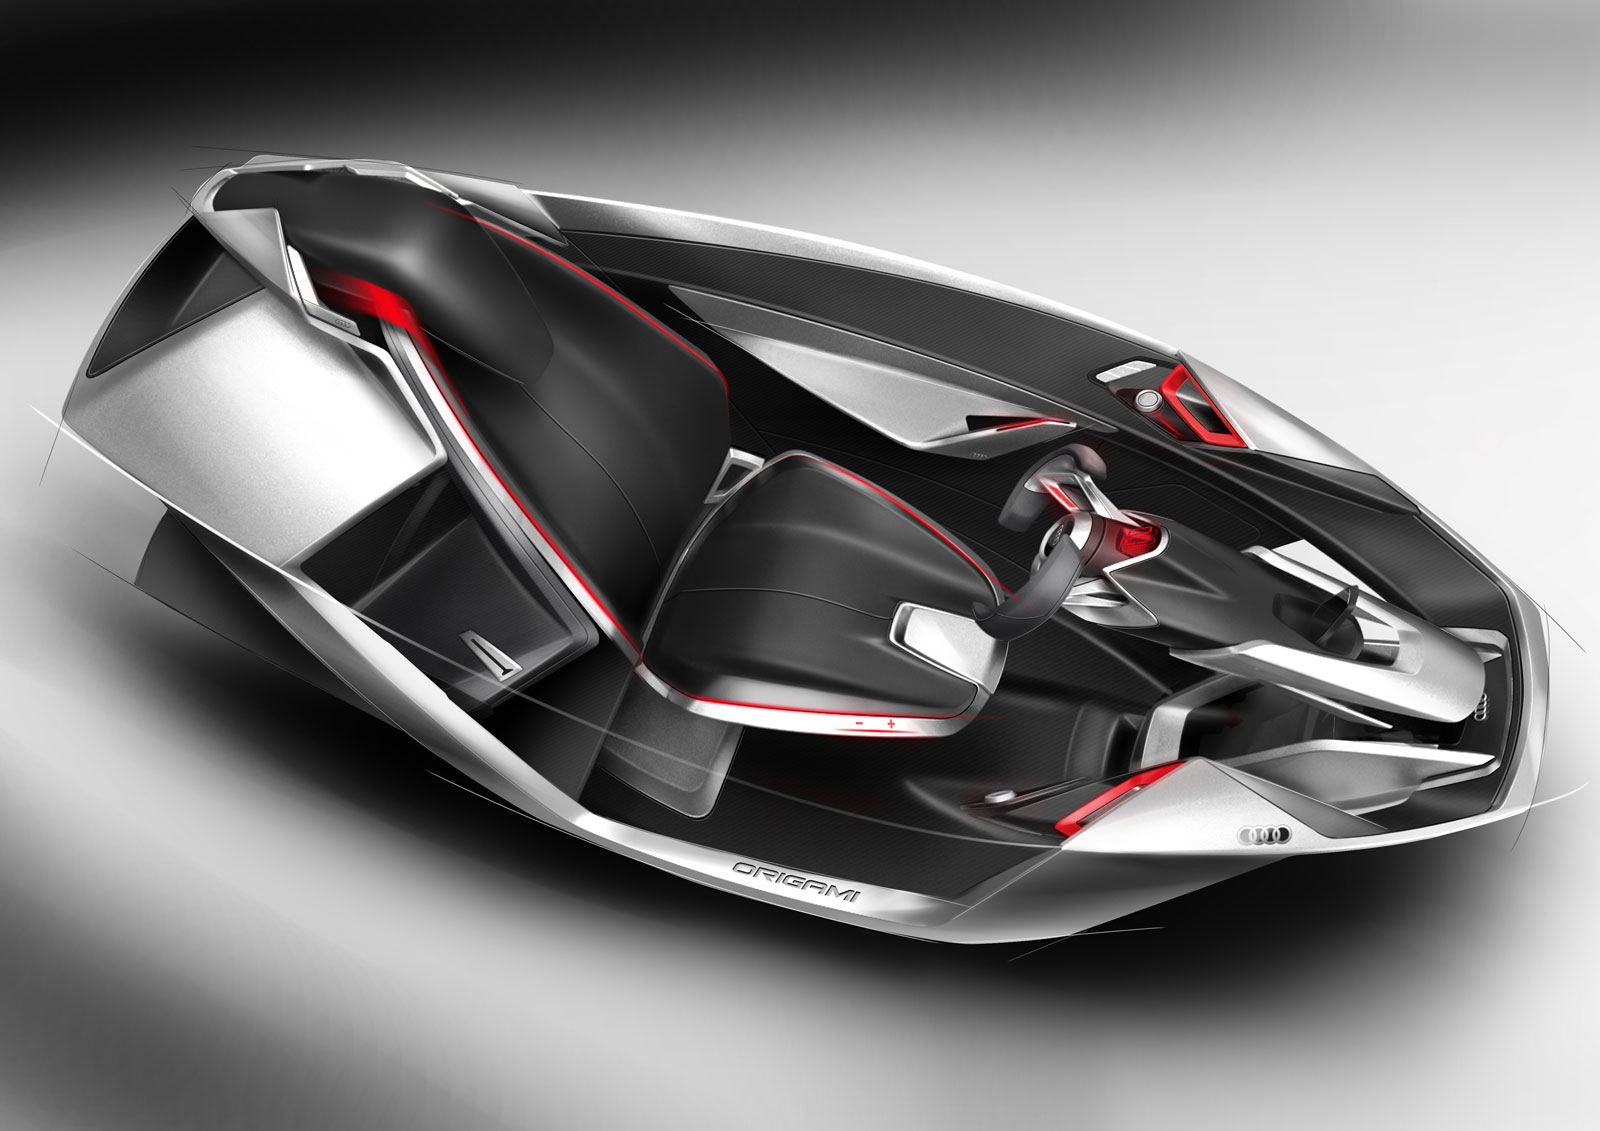 Spd concept car interior design sketches car body design - Car interior design ...